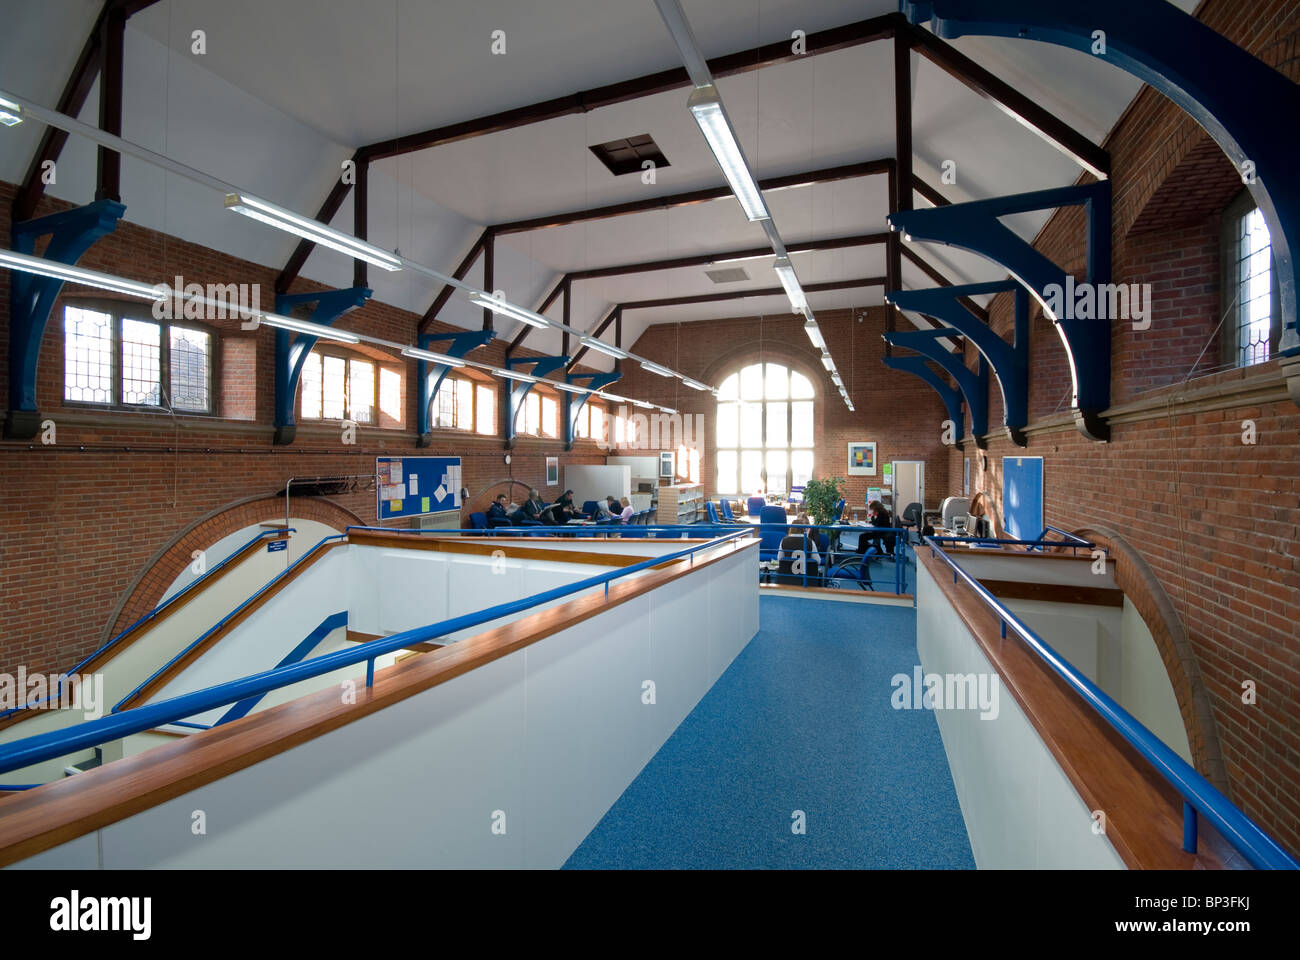 Peter Symonds College ramp joining old and new building - Stock Image